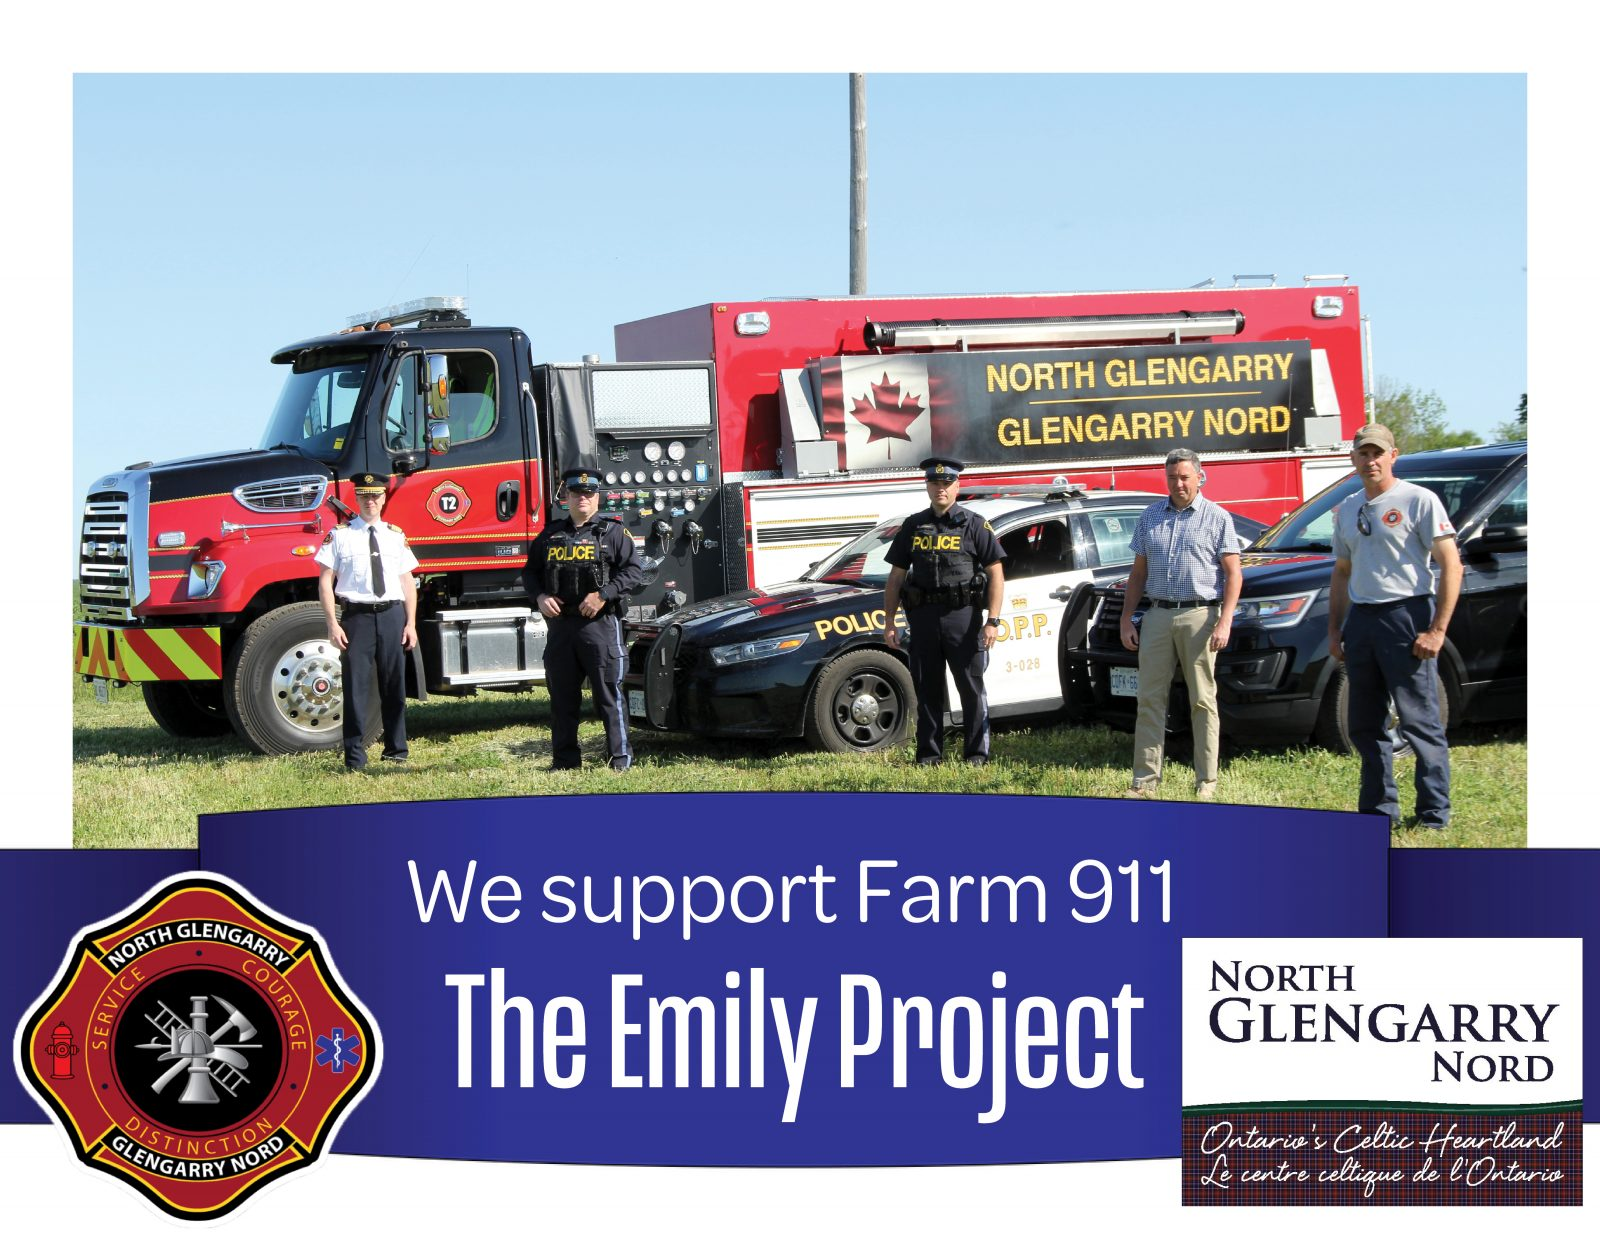 North Glengarry joins Farm 911 – Emily Project